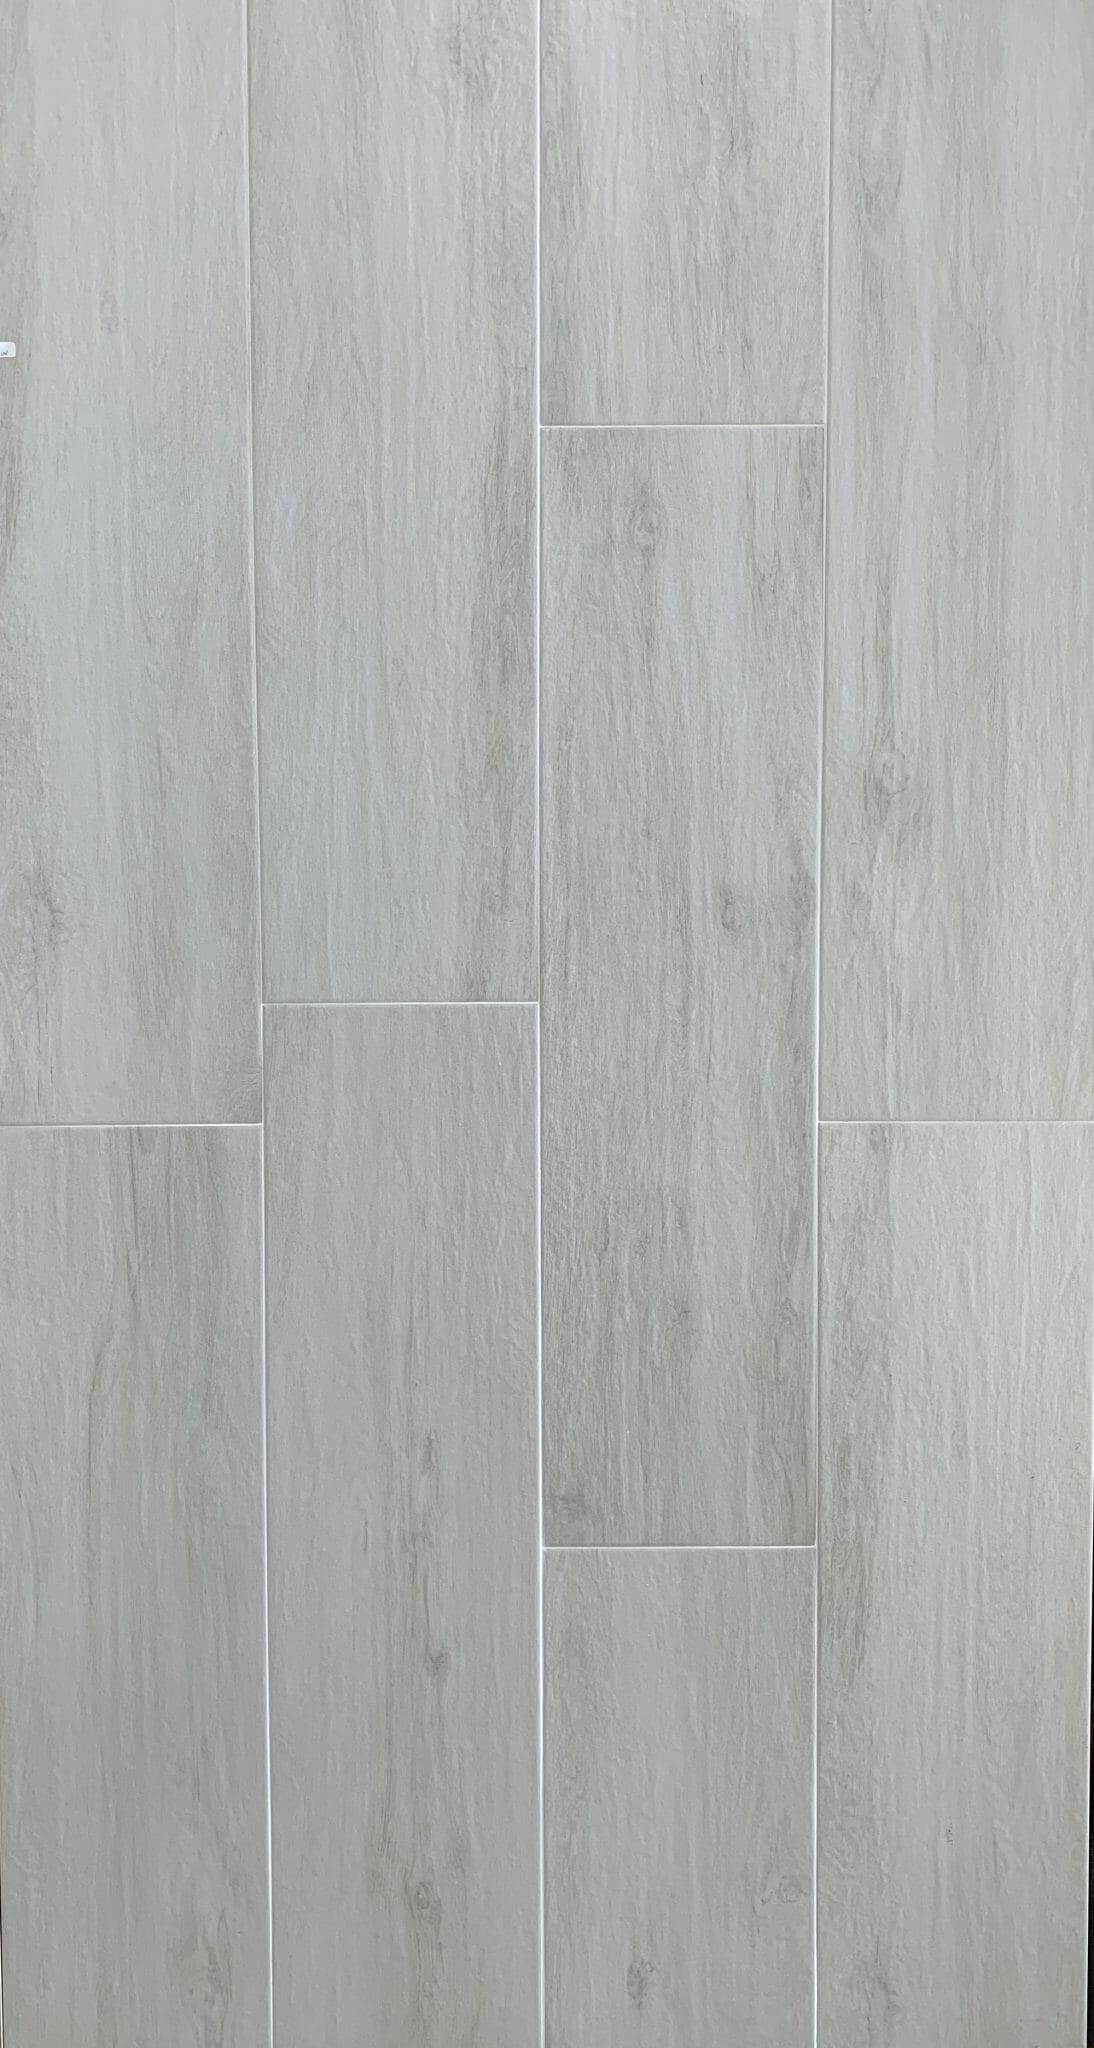 Forever Tilo Wood Look Porcelain Tile